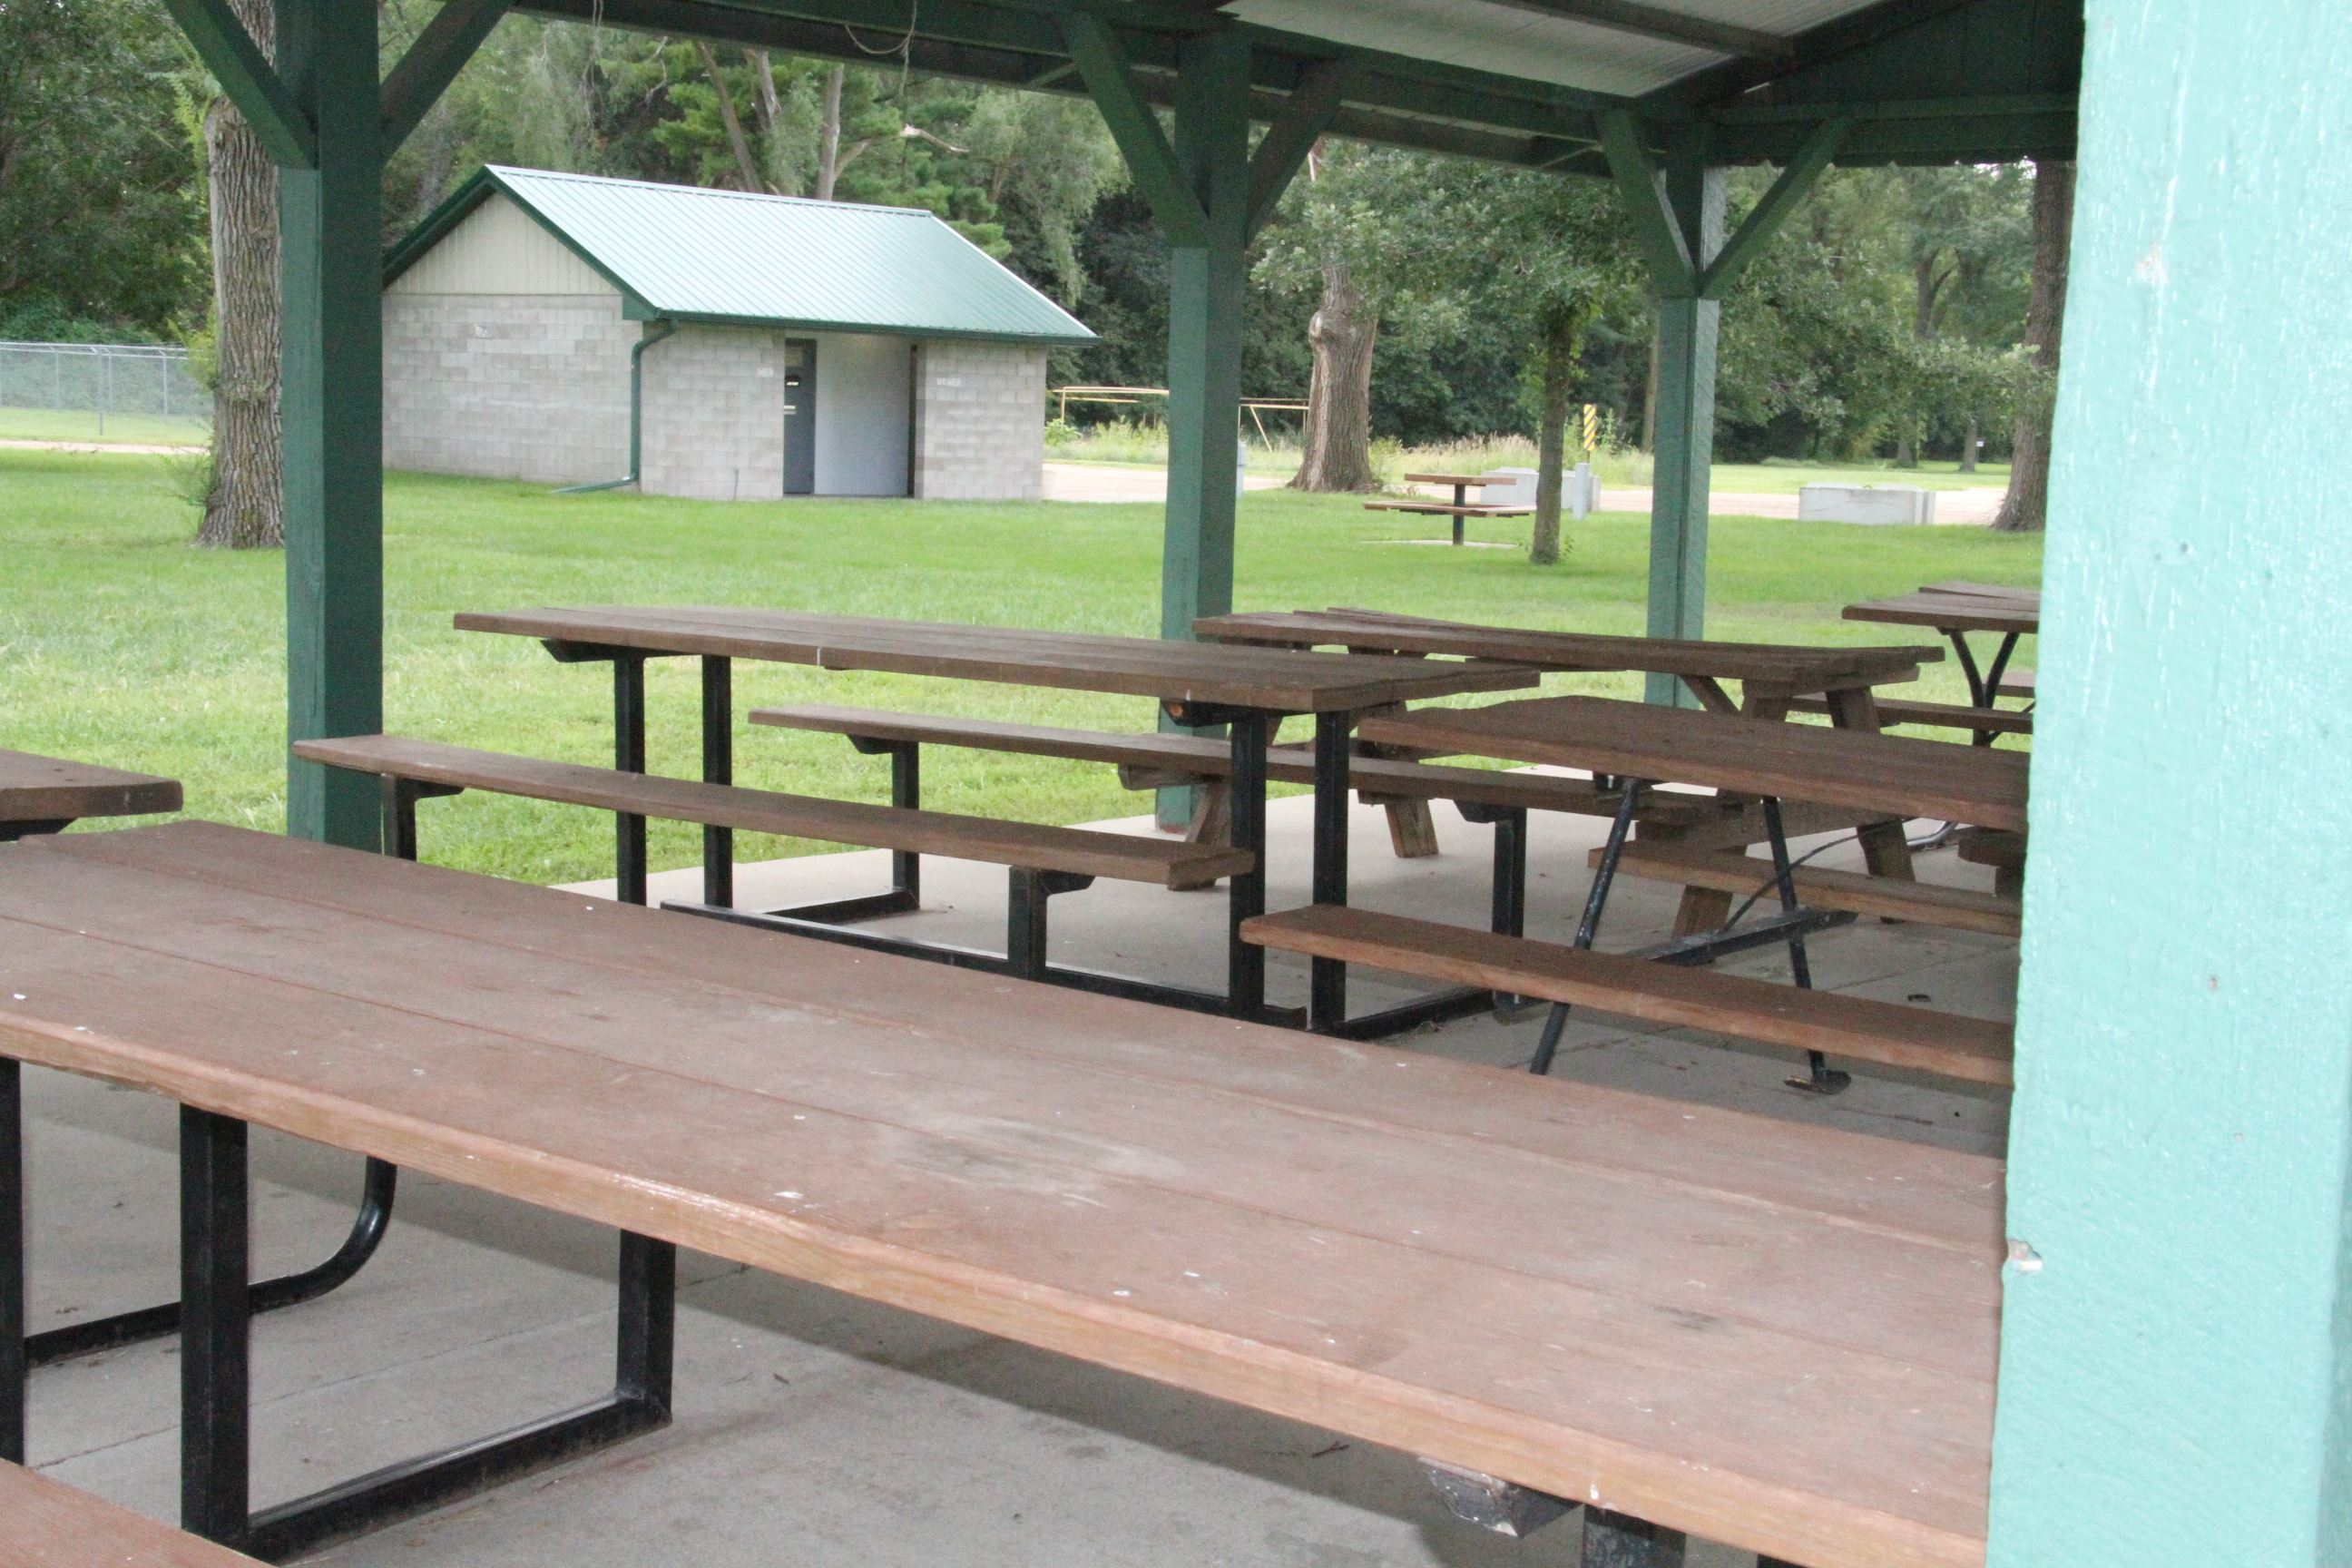 Picnic Tables Under Open Shelter